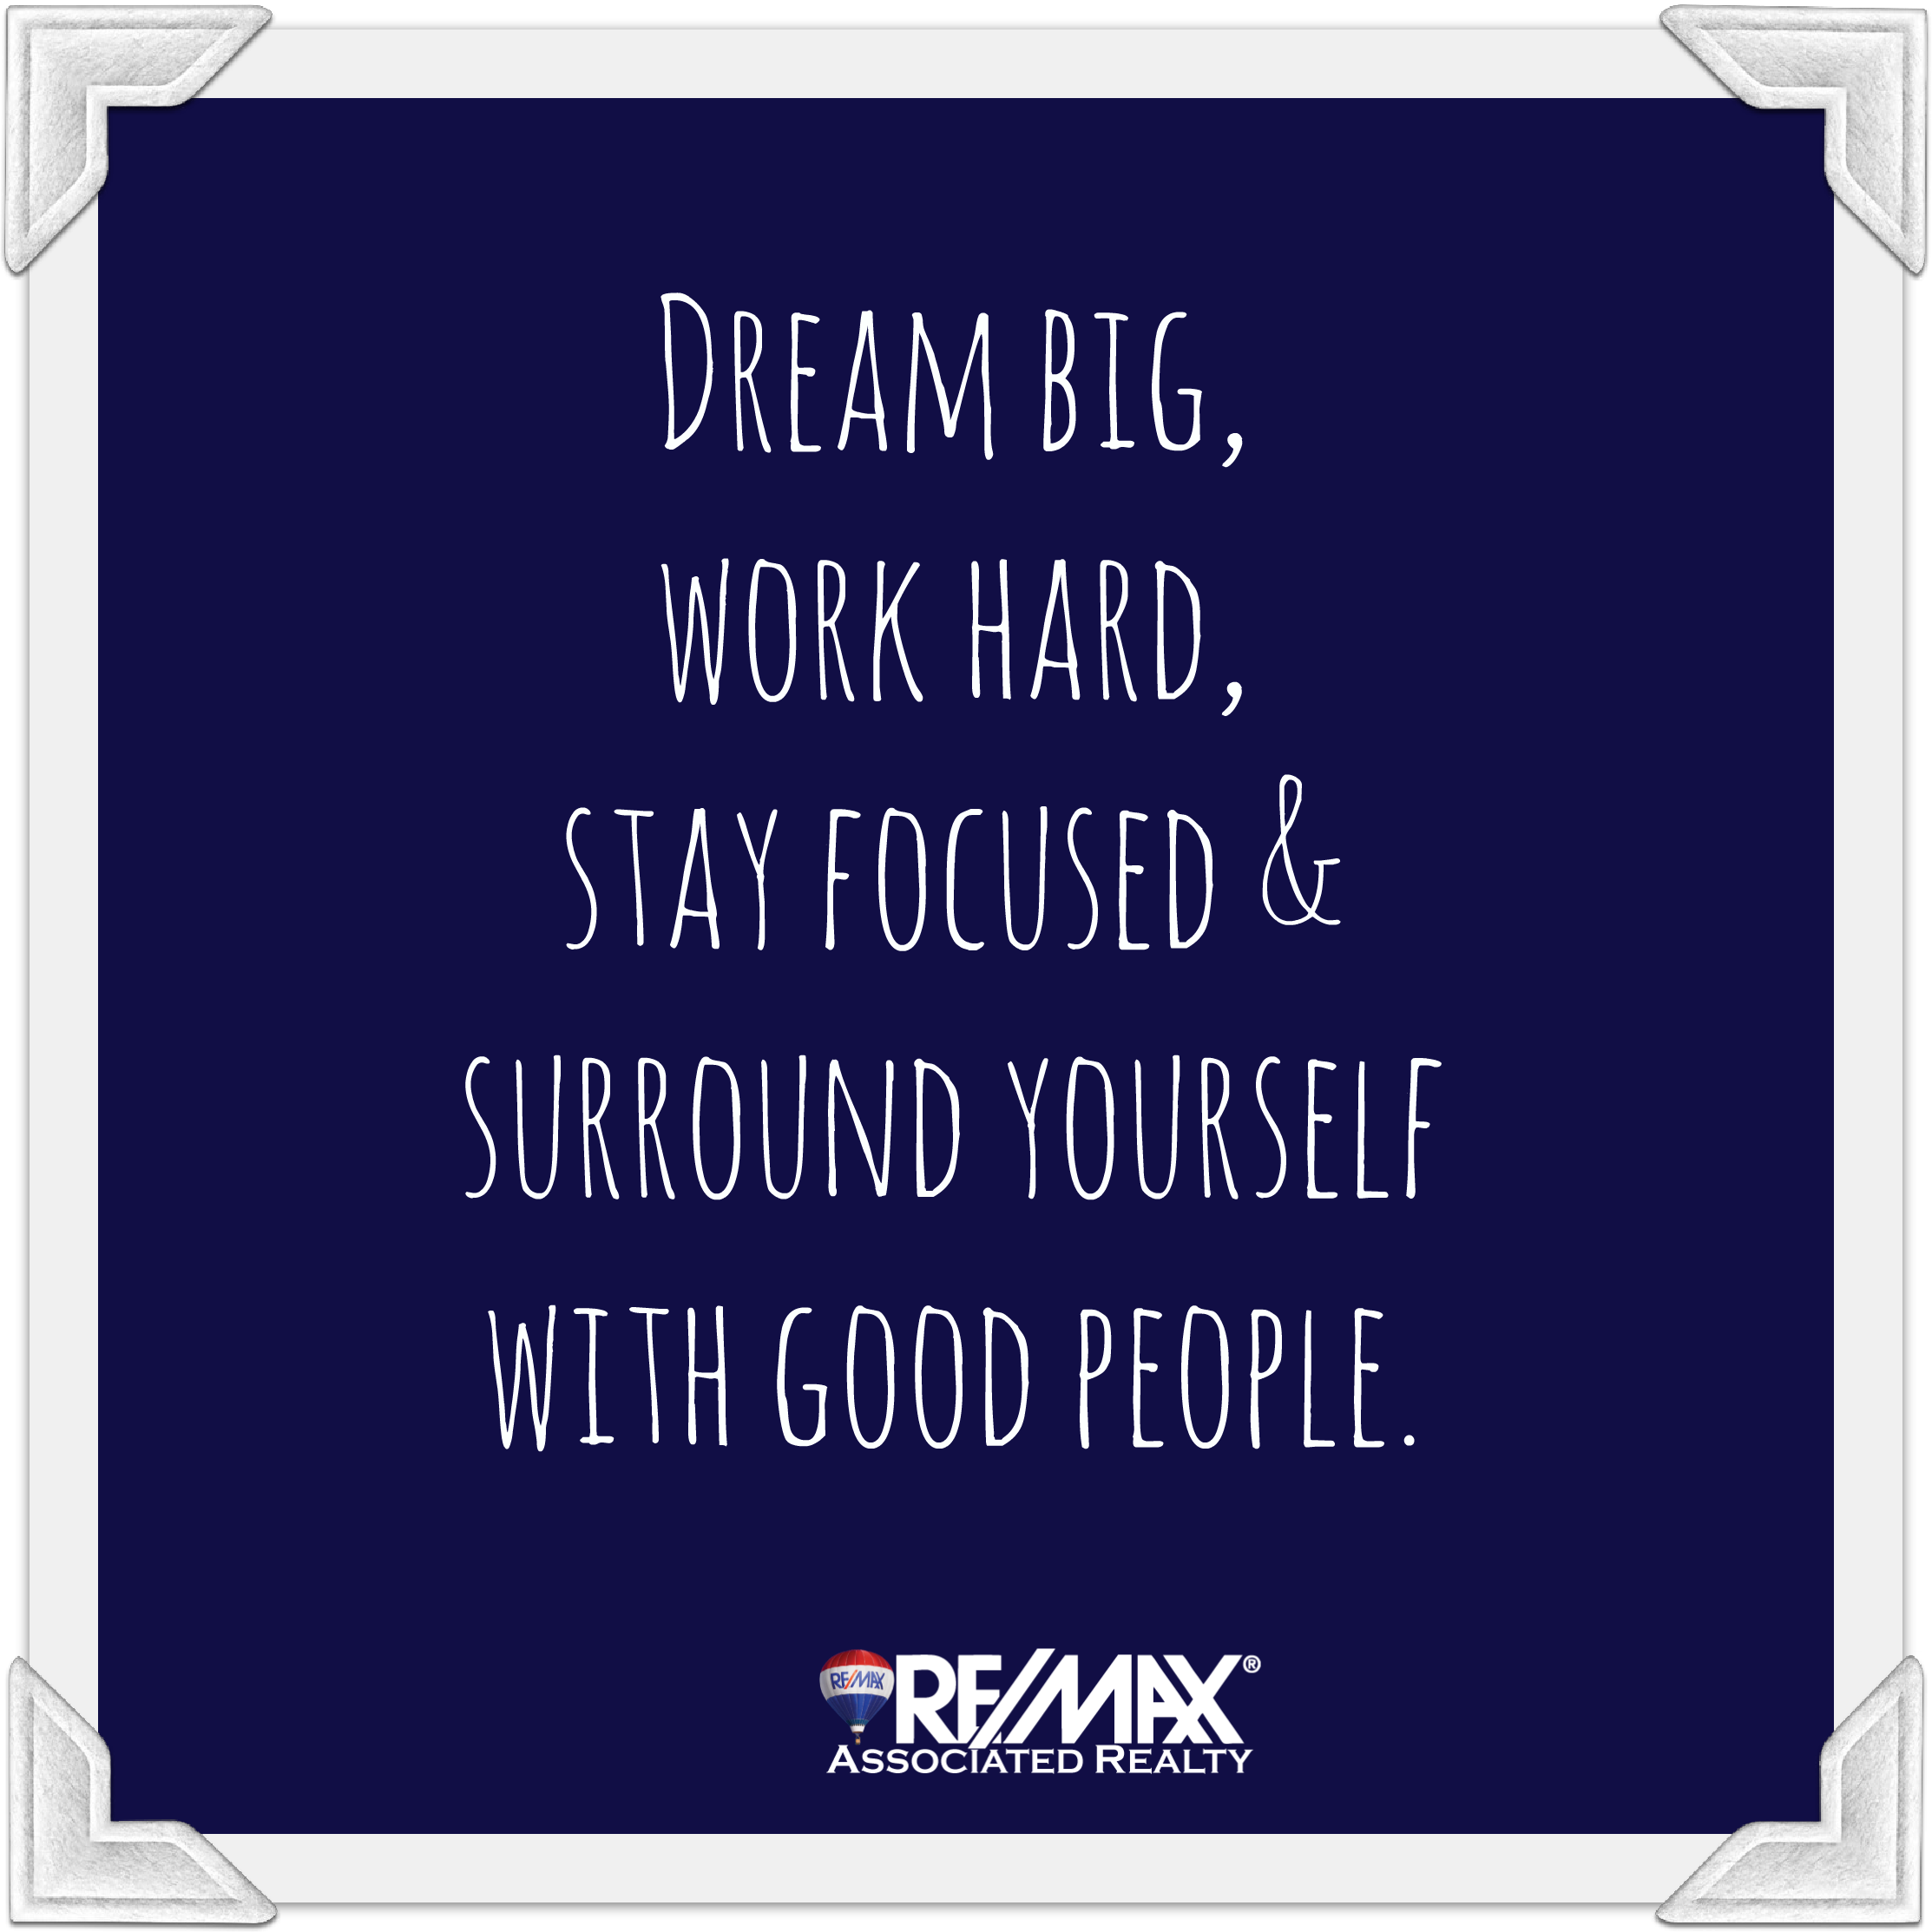 #dreambig #workharder